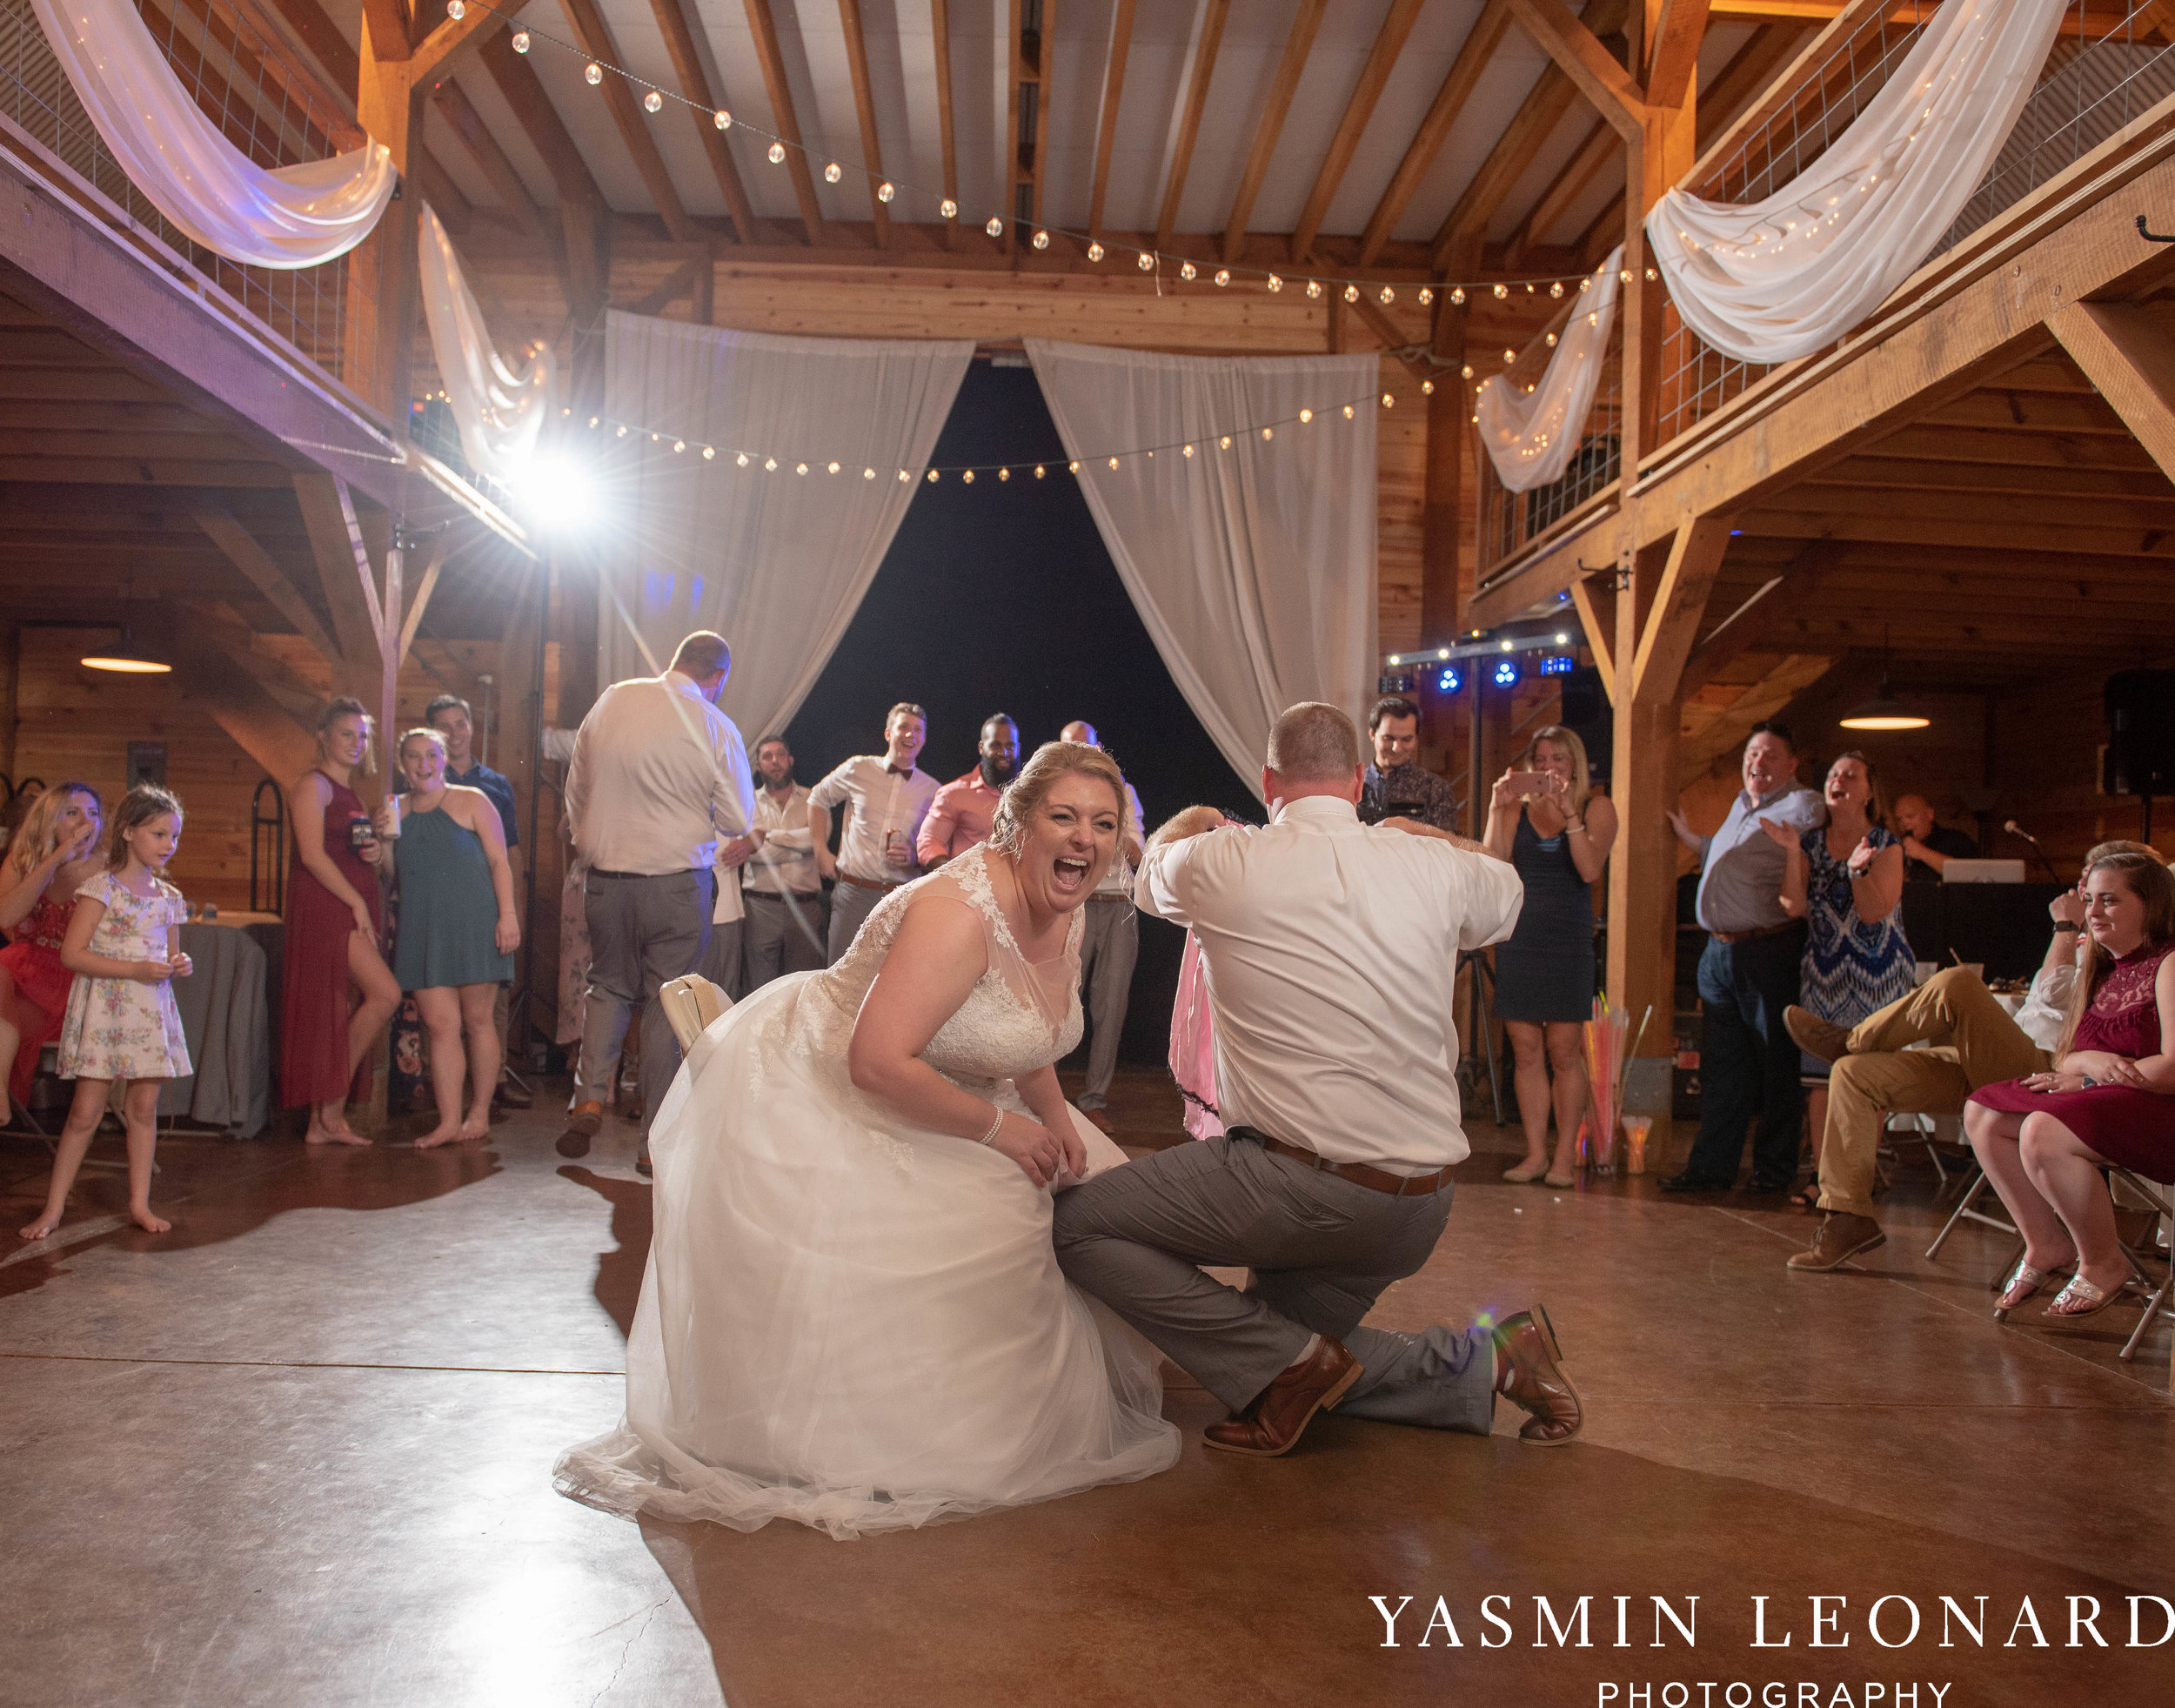 Danner Farms - NC Wedding Venues - NC Barns - Statesville NC - NC Wedding Photographer - High Point Wedding Photographer - Yasmin Leonard Photography-85.jpg